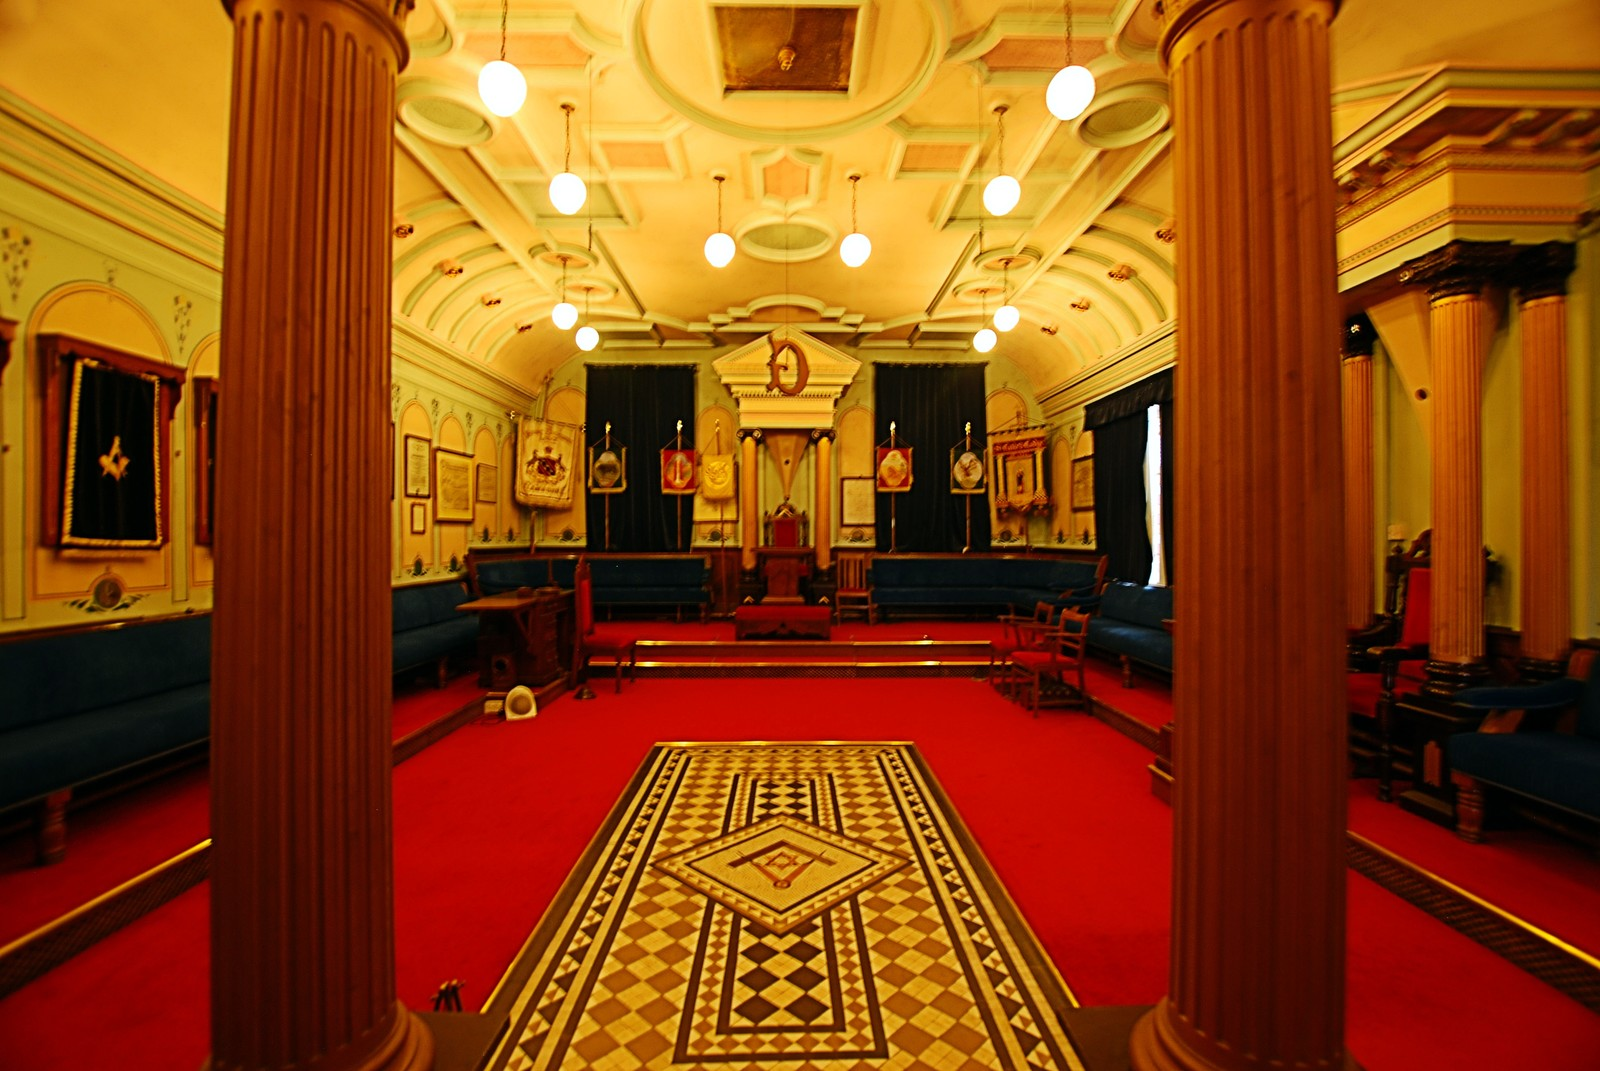 Camborne Masonic Lodge